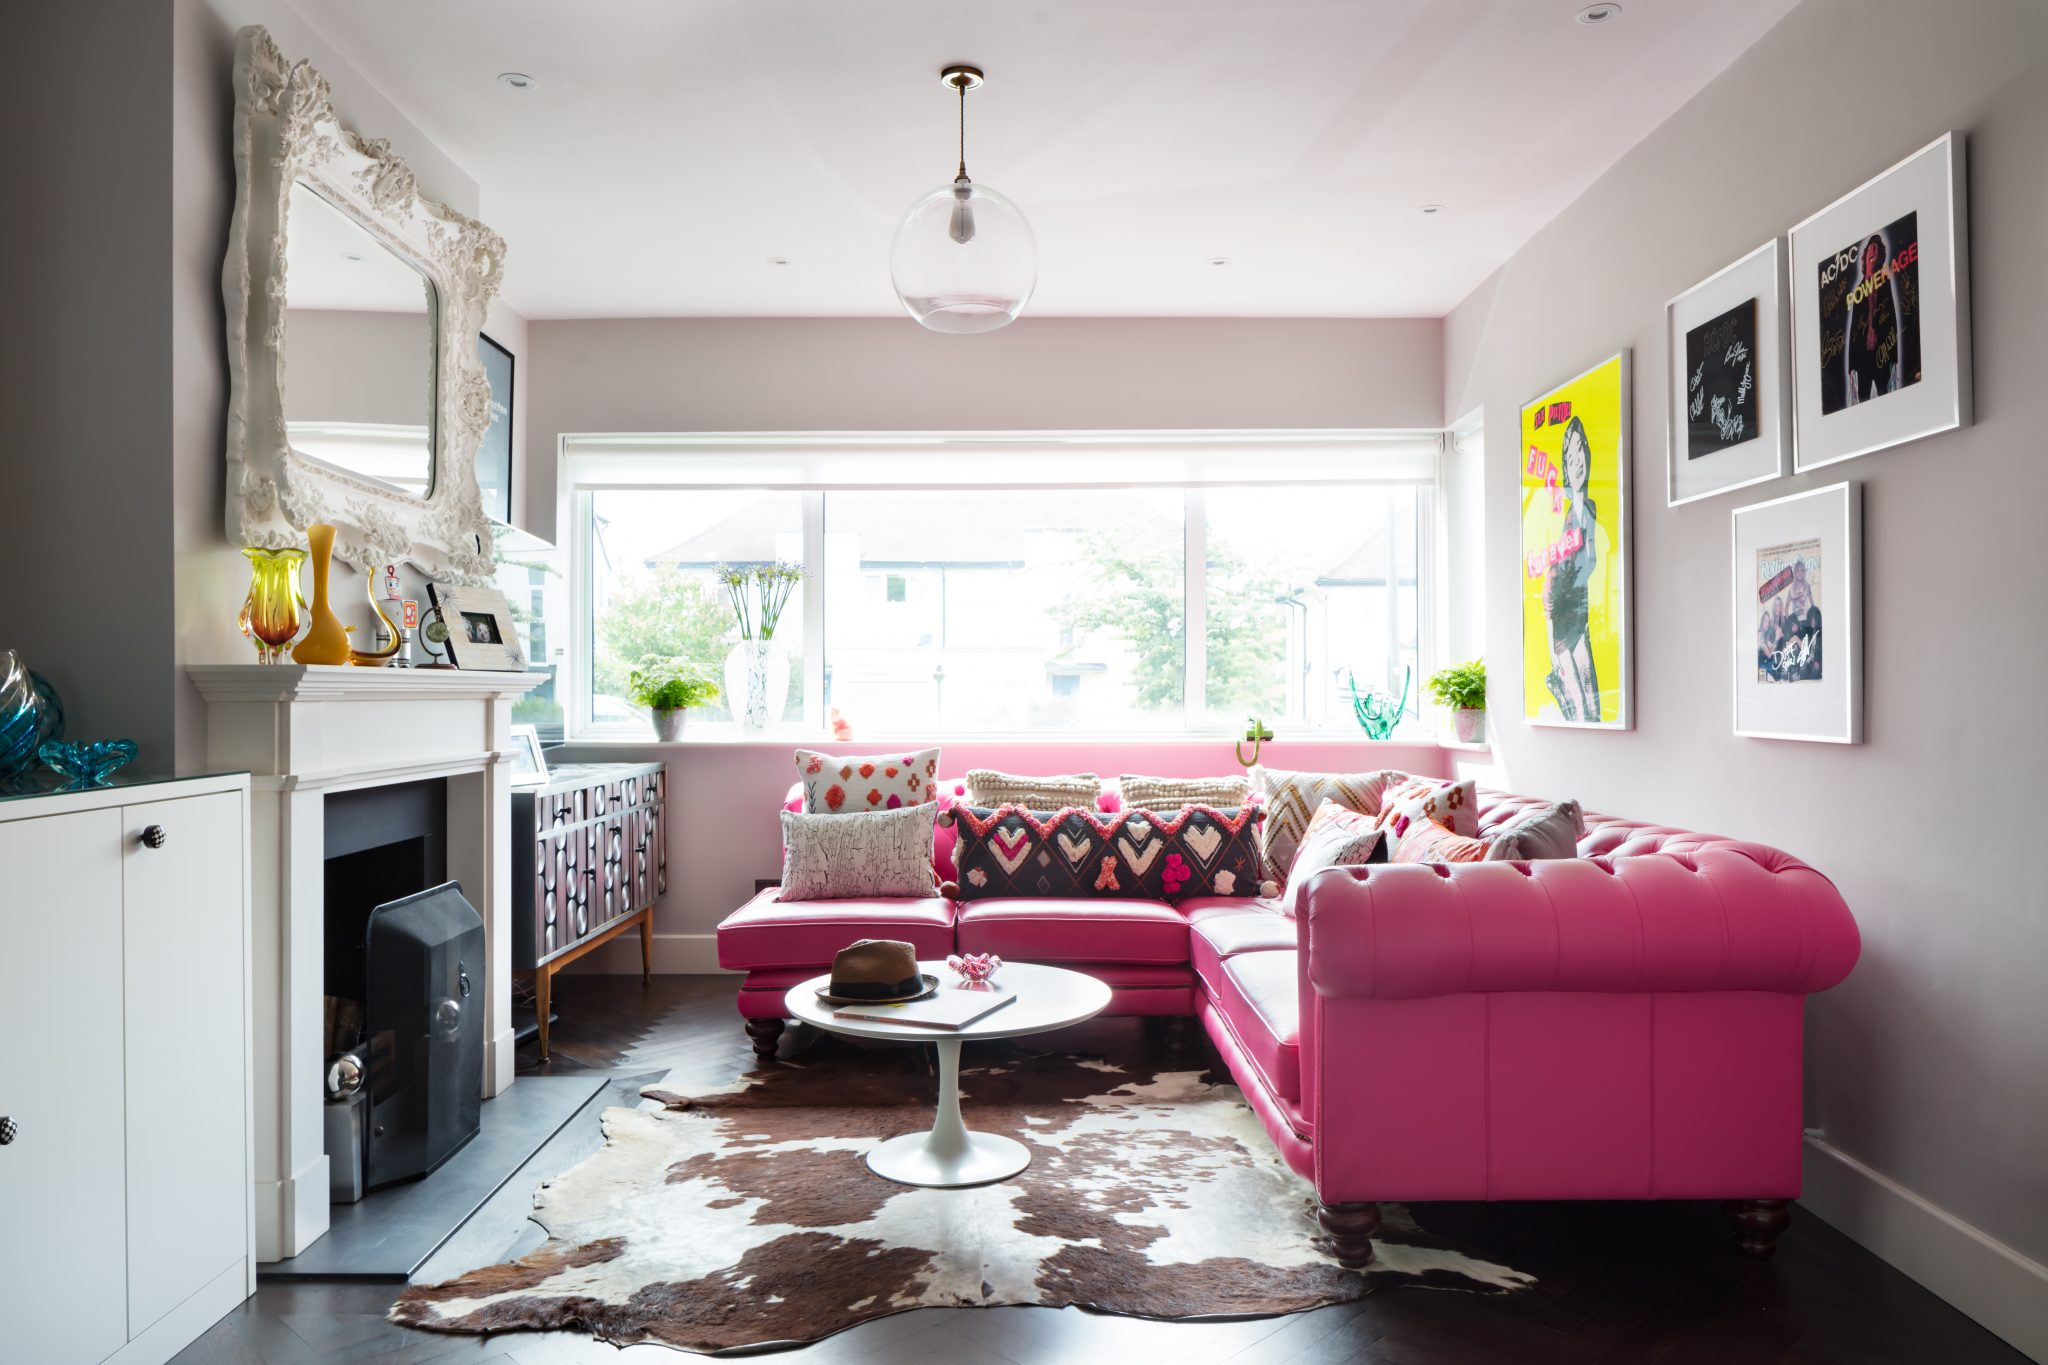 Casey & Fox | Surbiton, KT6 - Art Deco Home